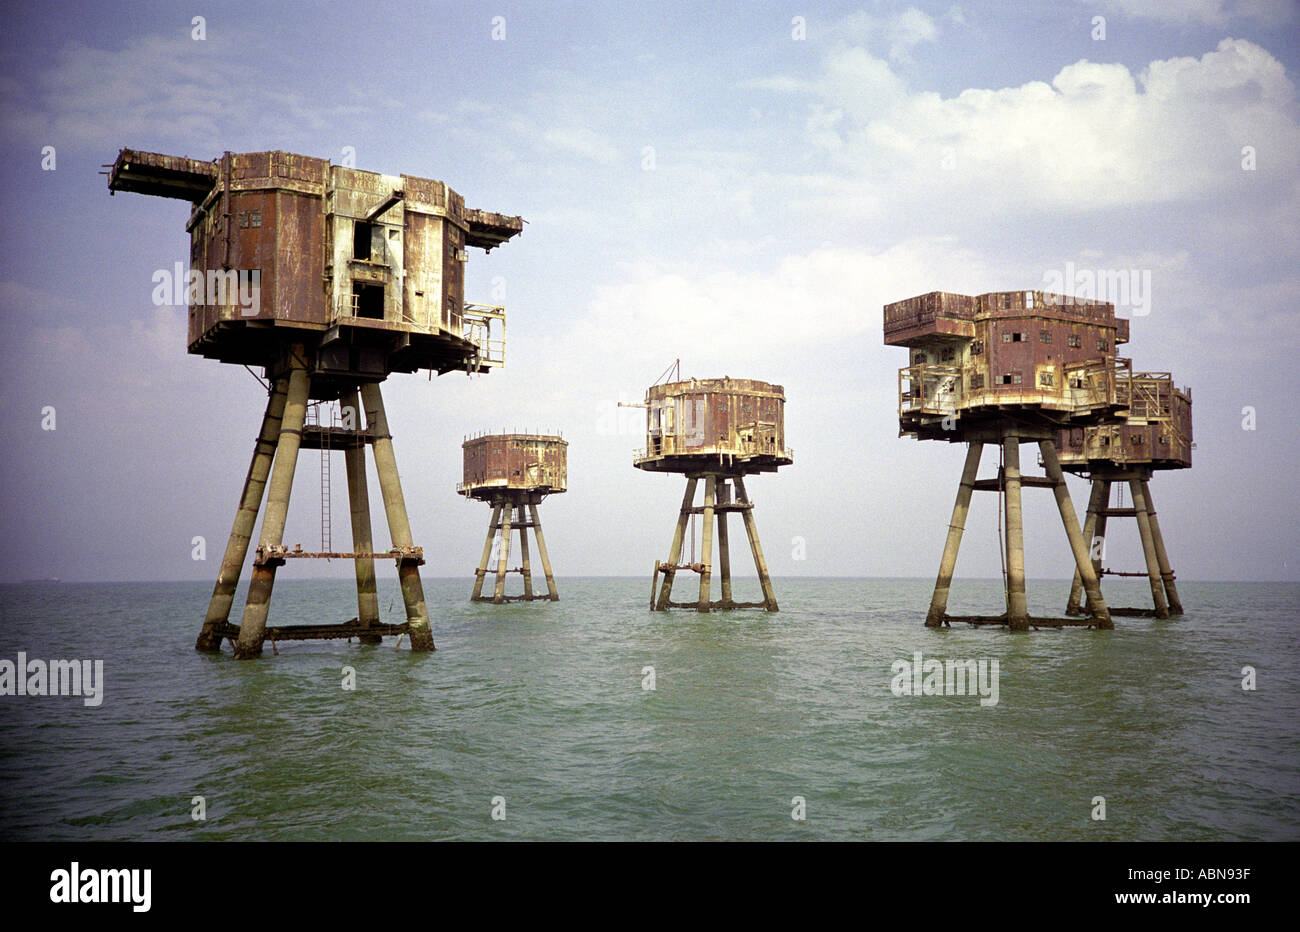 Sea defenses 2 - Stock Image